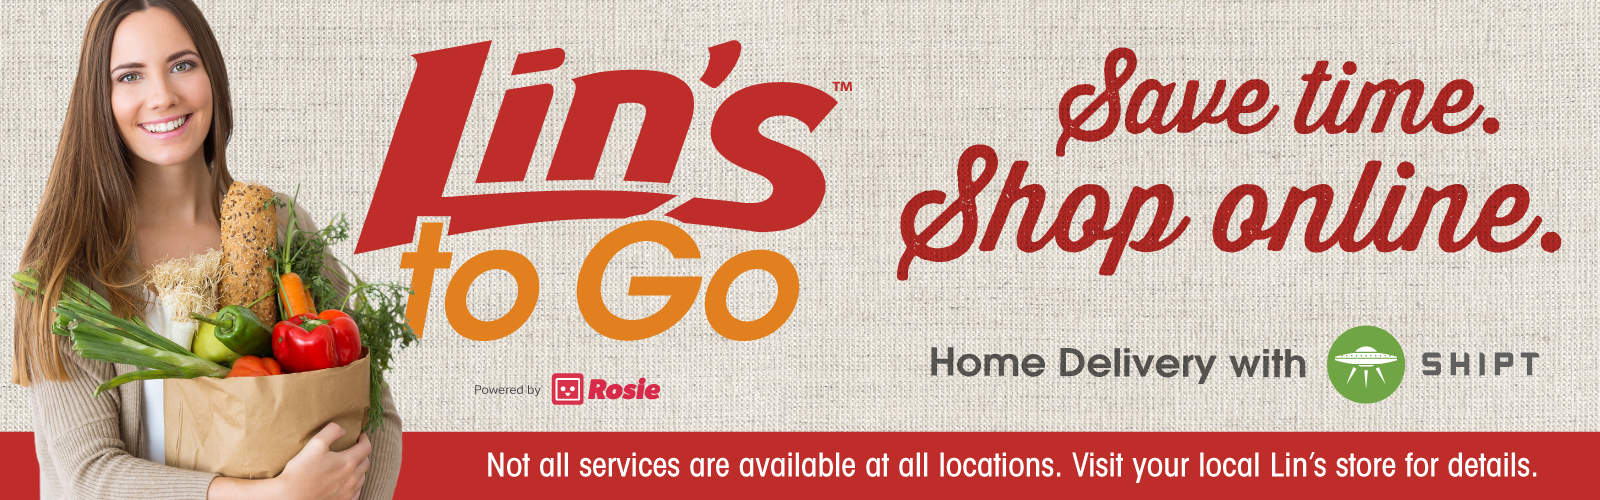 Save Time with Lin's to Go